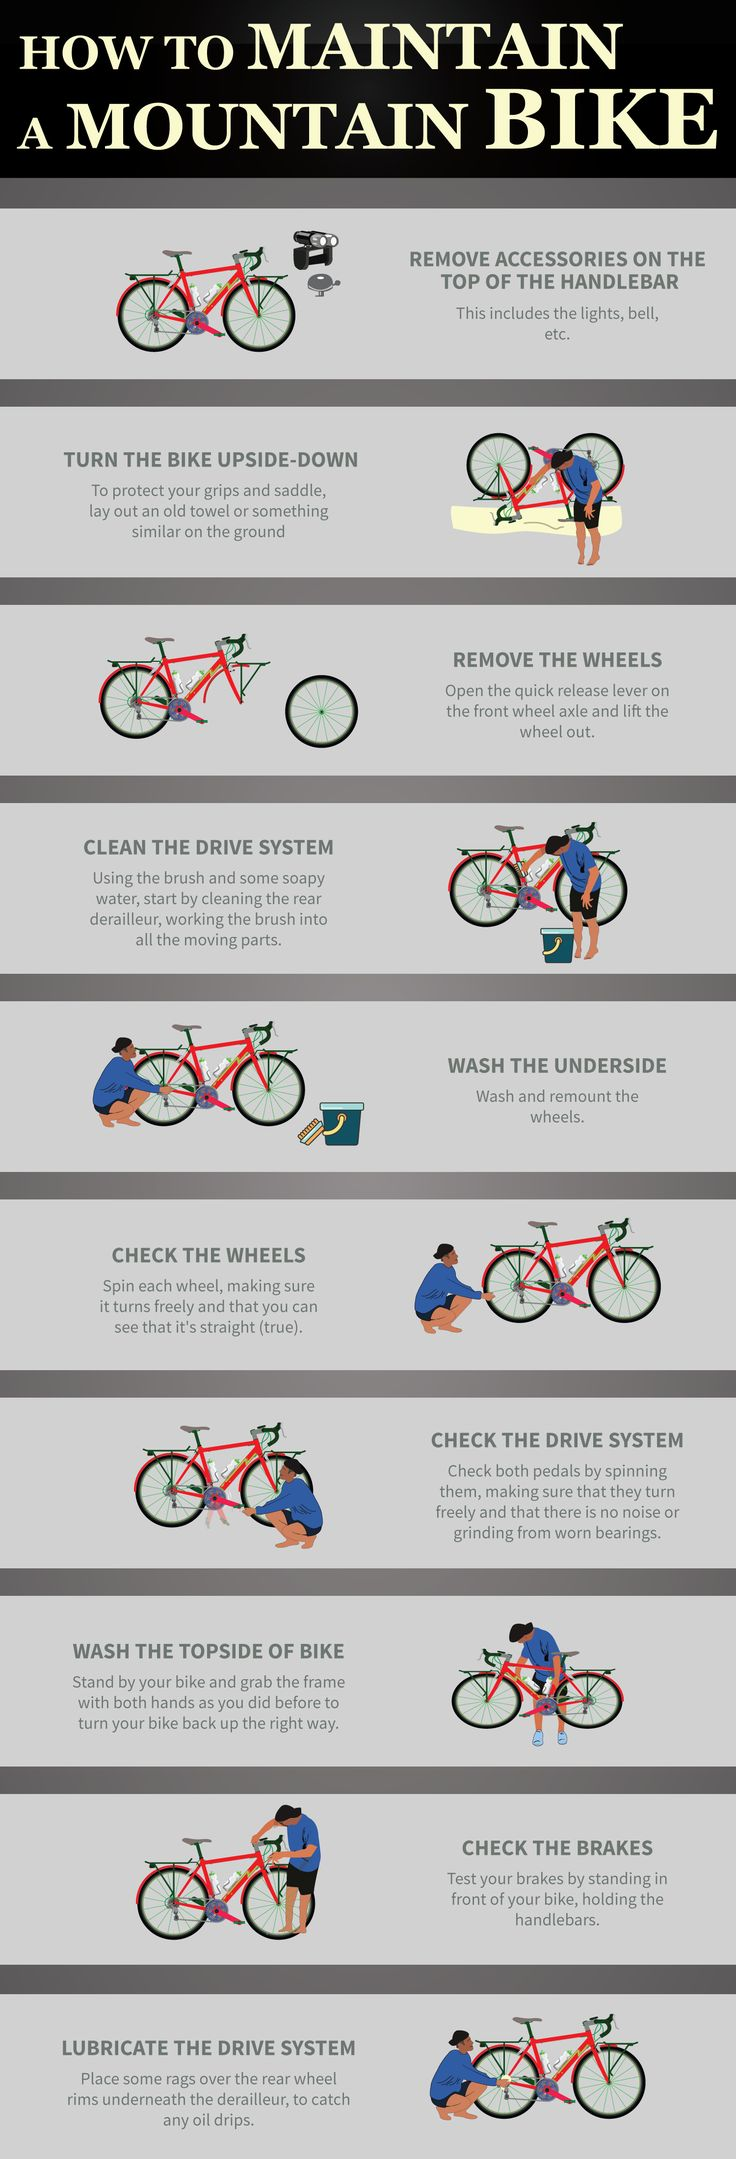 Infographic | How to Maintain a Mountain Bike in 10 Easy Steps